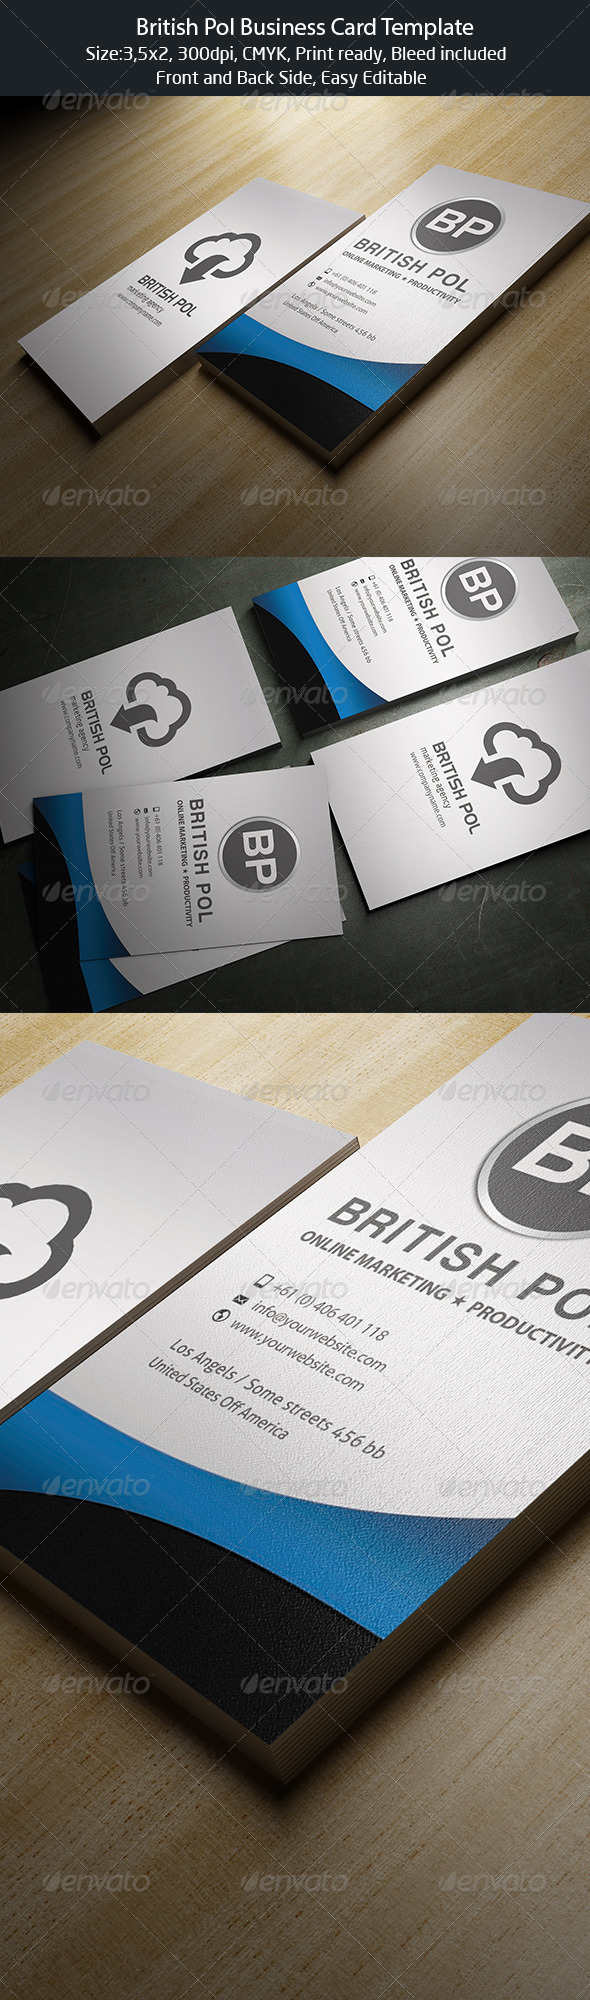 British Pol Business Card - Corporate Business Cards